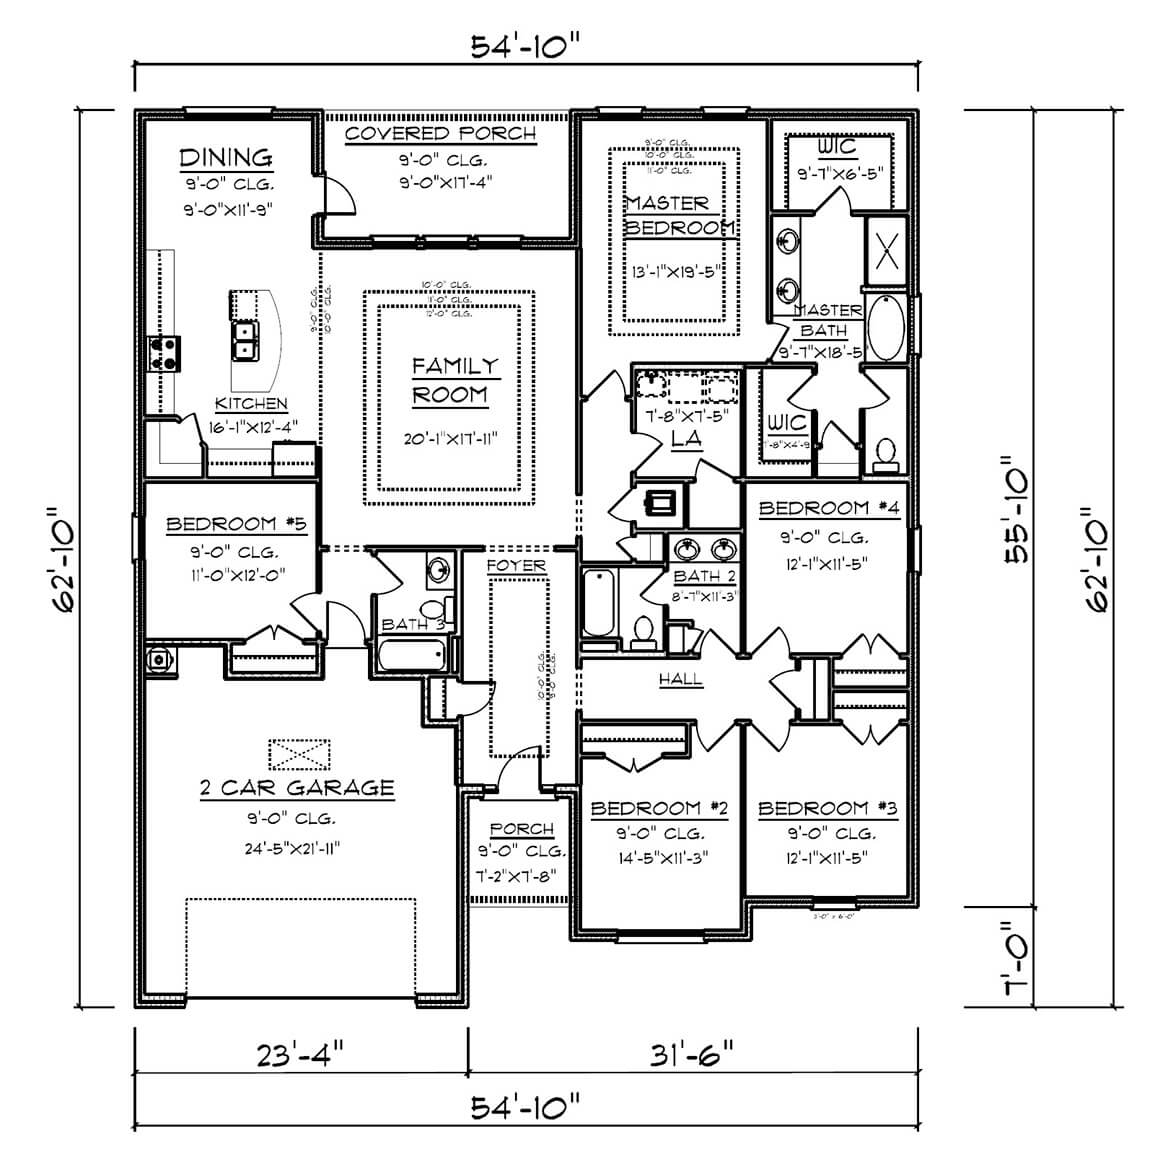 Kaden floorplan by DR Horton in Baldwin